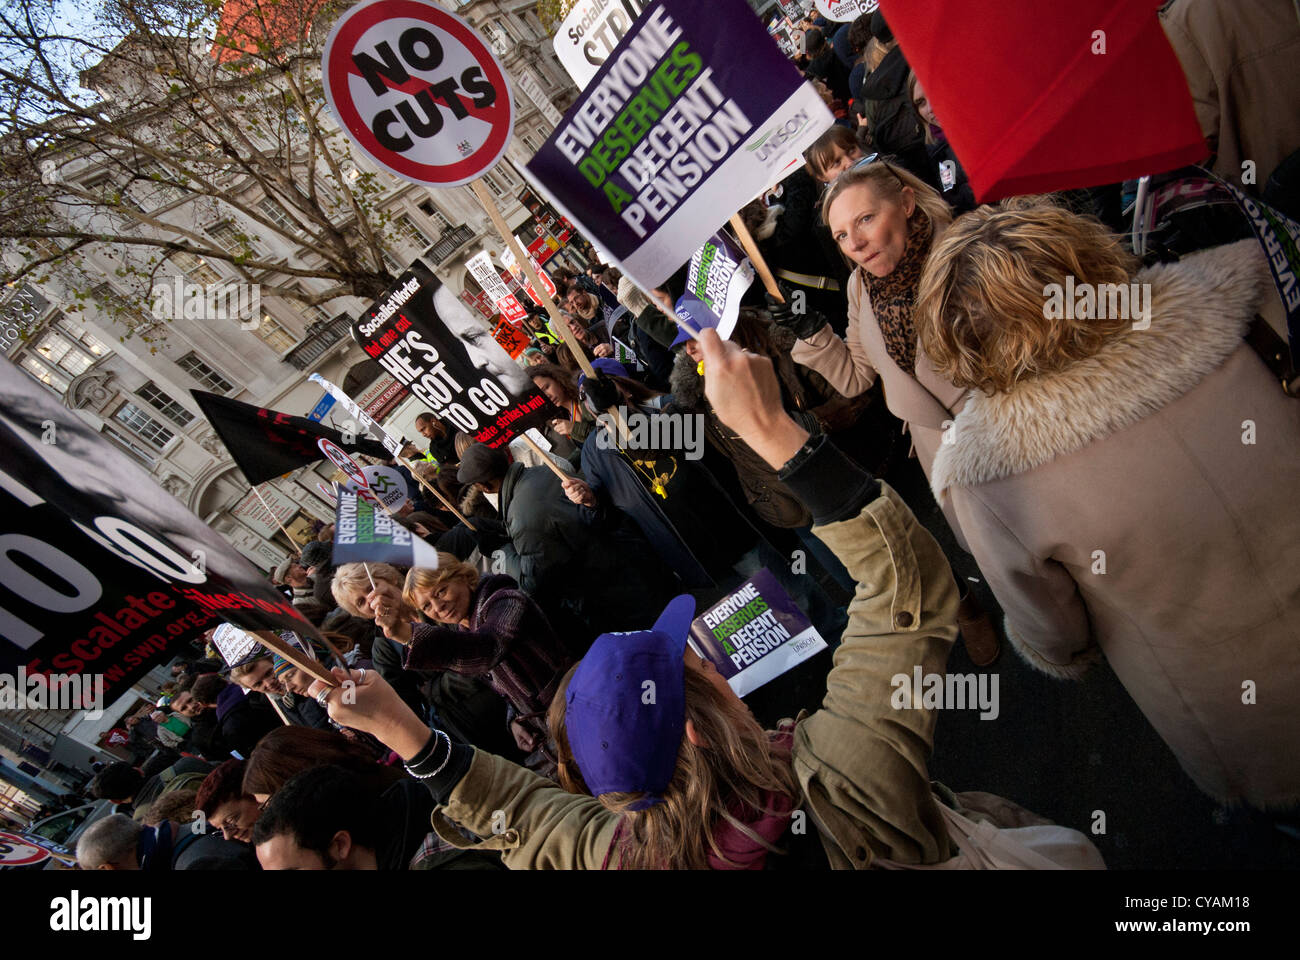 London national demonstration on student fees - Stock Image